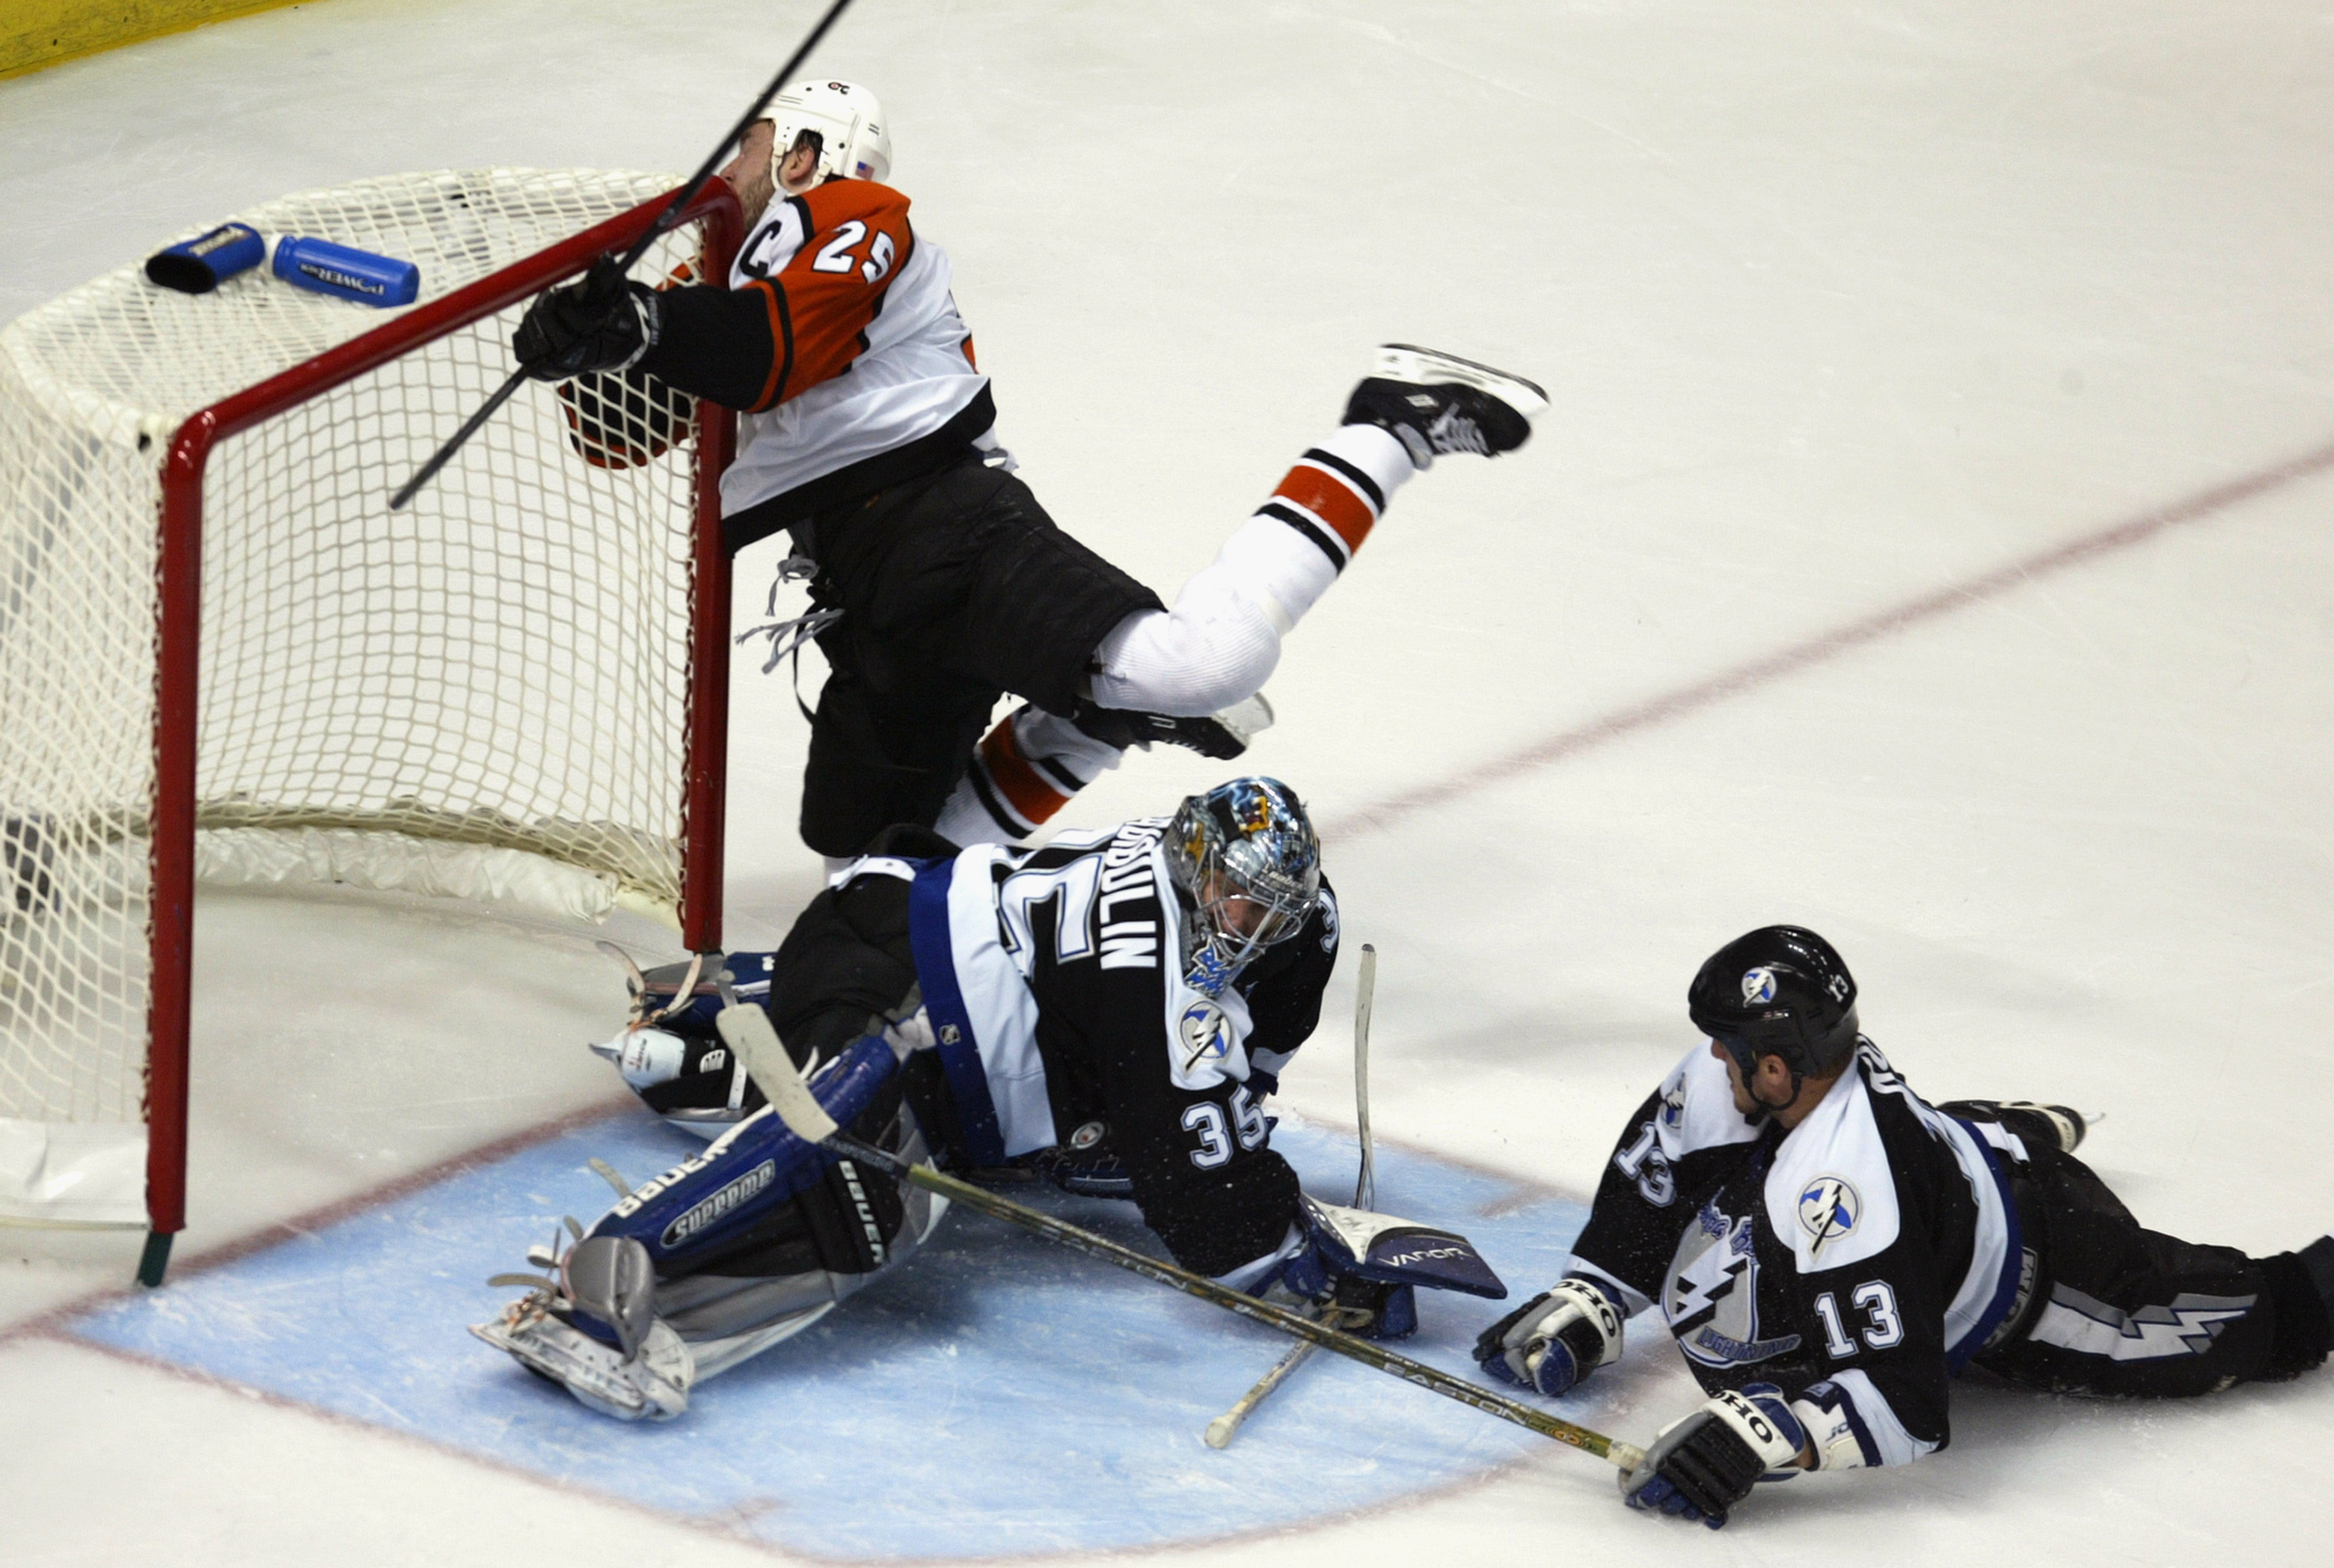 TAMPA, FL - MAY 22:  Keith Primeau #25 of the Philadelphia Flyers crashes the net as goaltender Nikolai Khabibulin #35 and Pavel Kubina #13 of the Tampa Bay Lightning keep the puck out of the net during Game Seven of the NHL Eastern Conference Finals on M